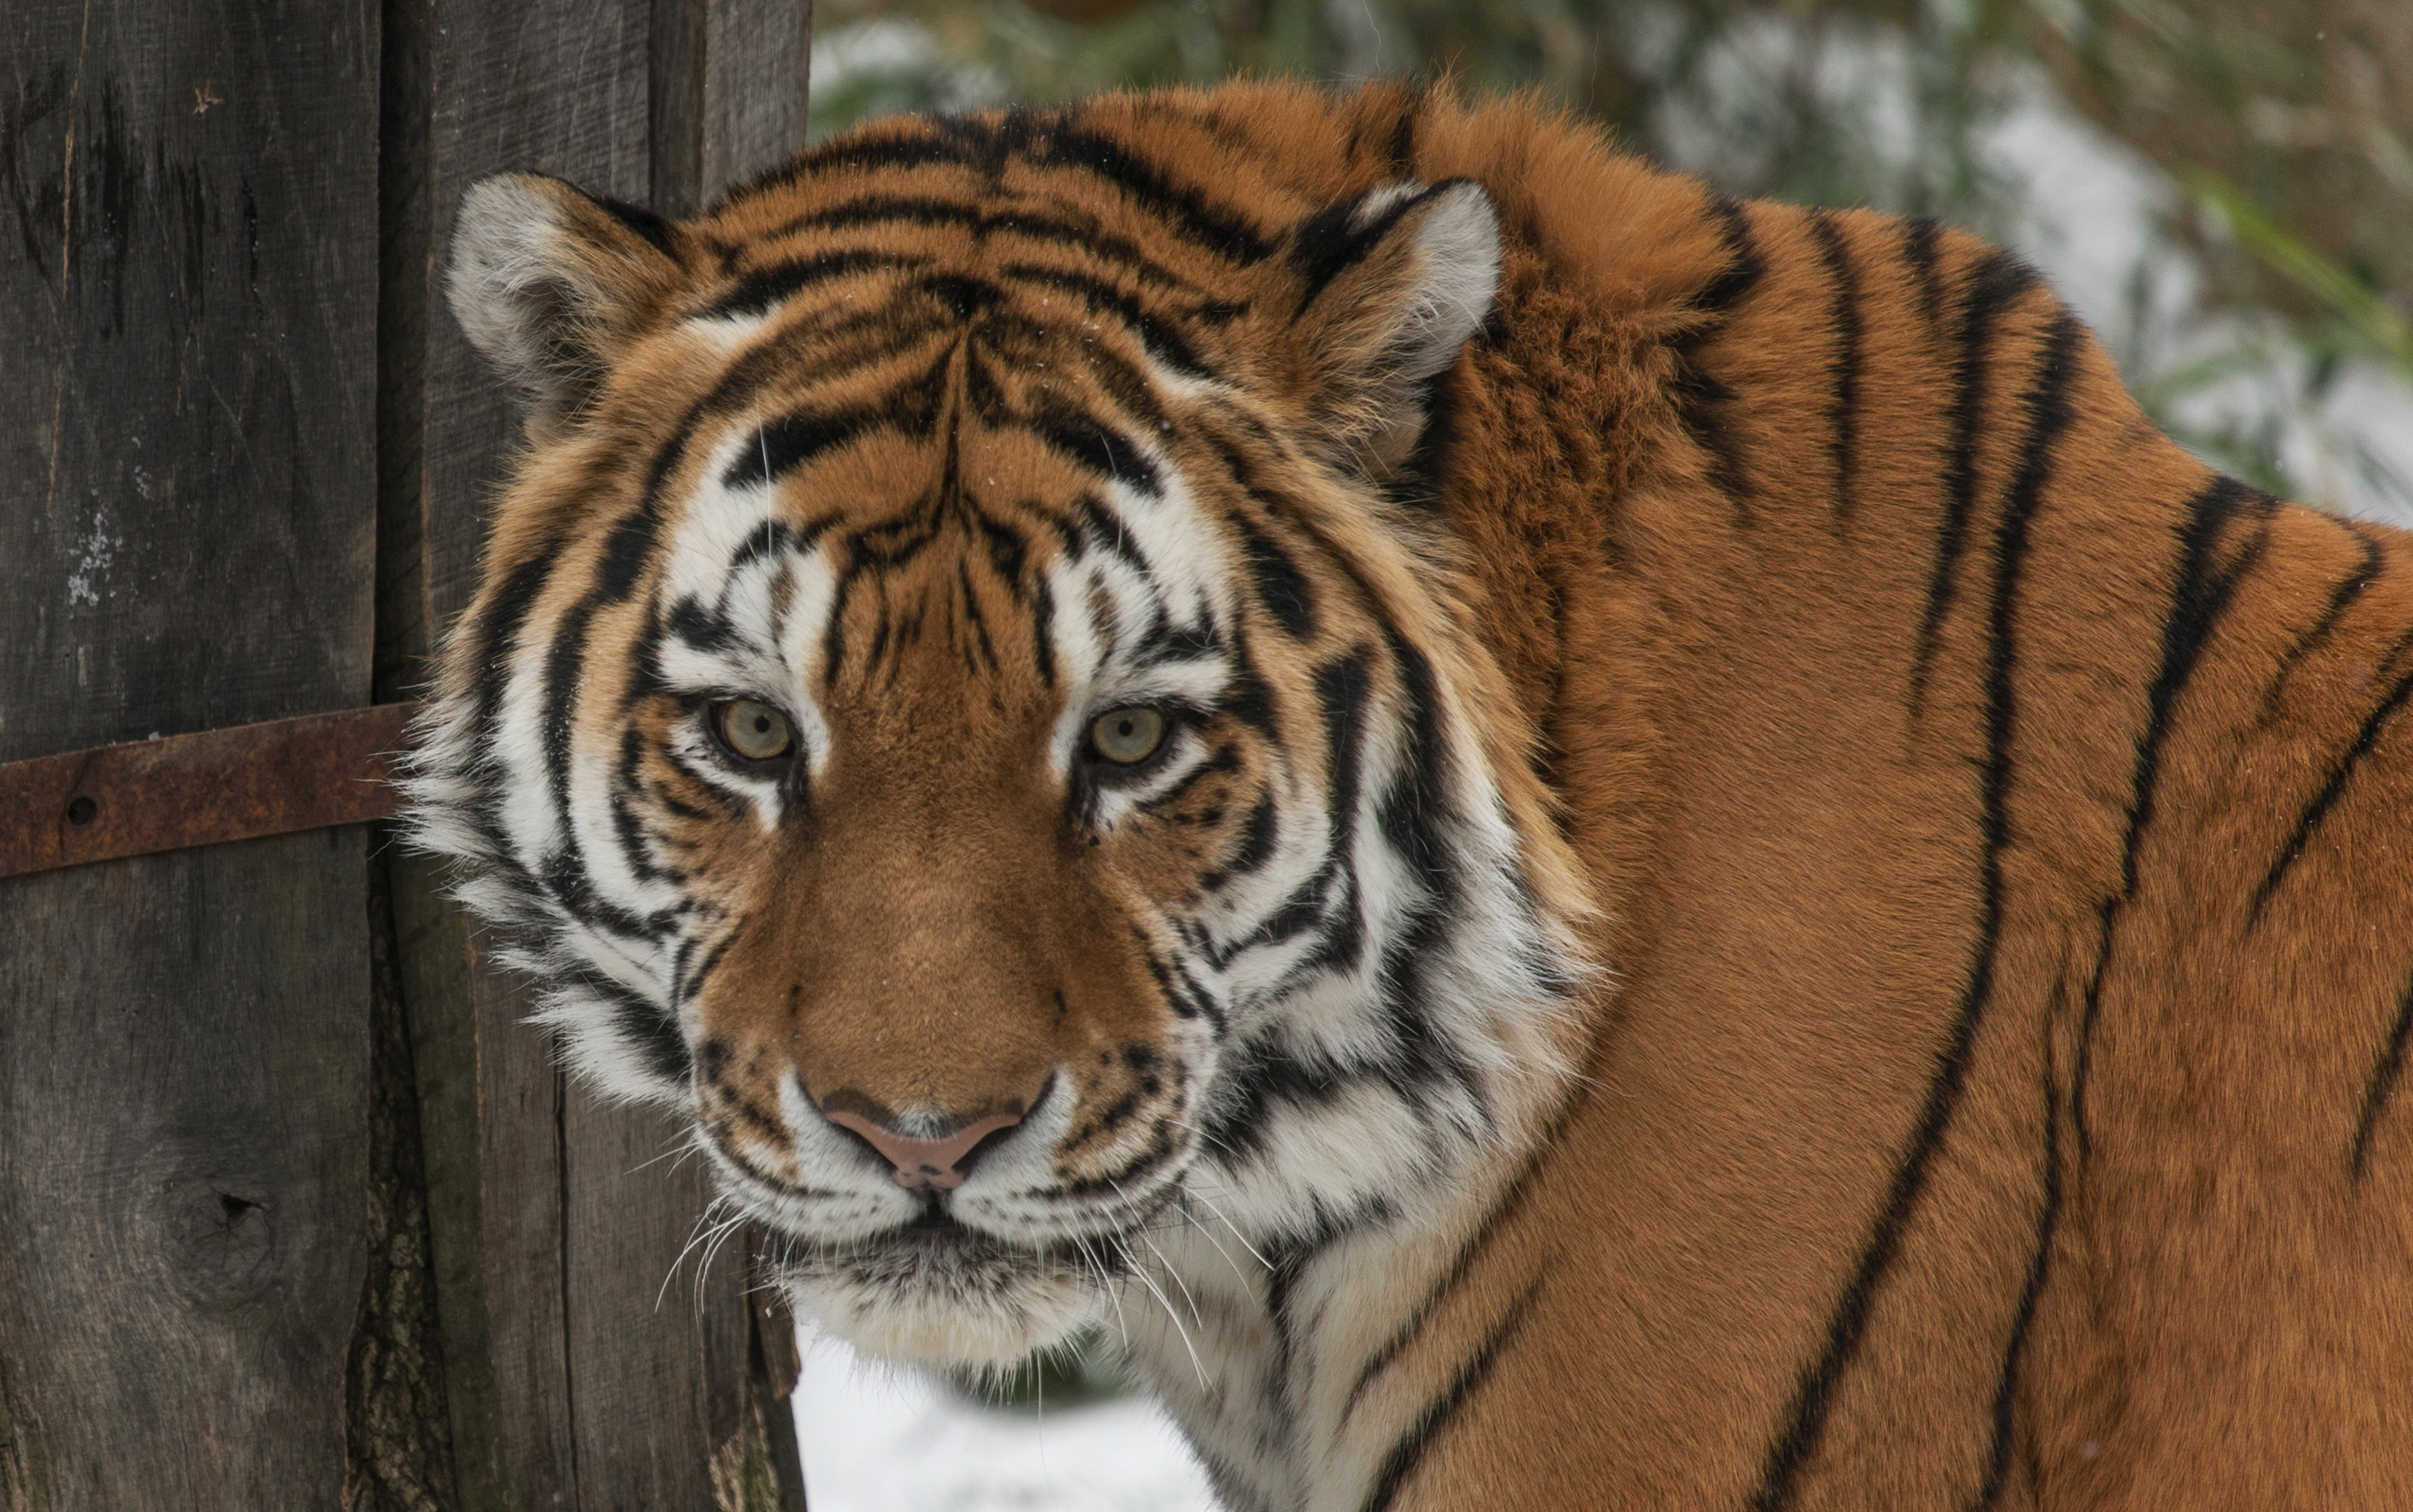 New At the Zoo: Amur Tiger | Smithsonian's National Zoo